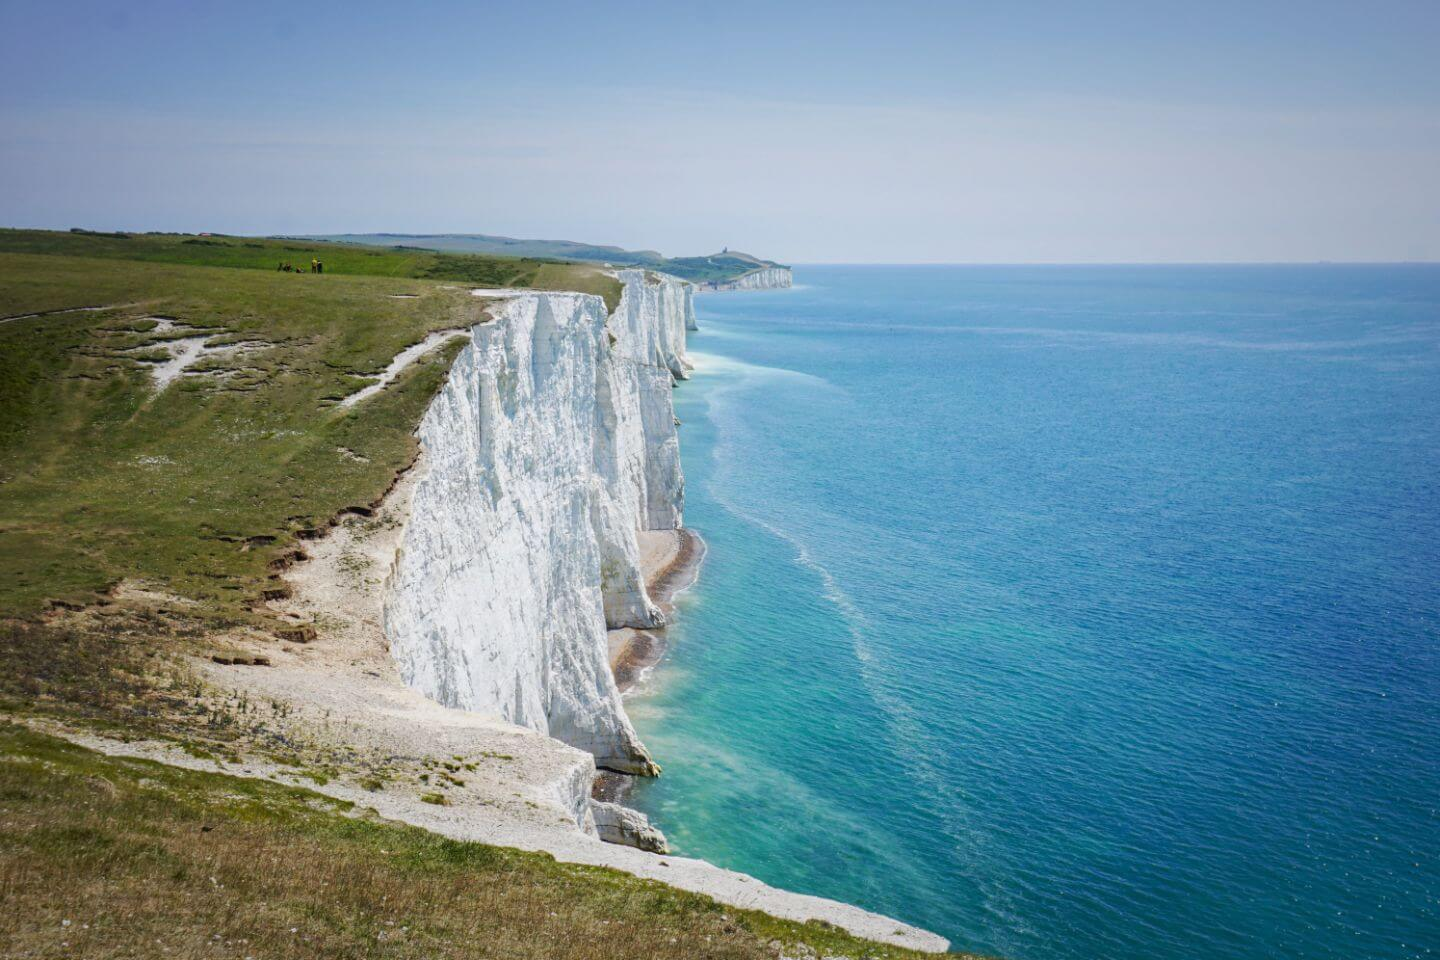 South Downs Way, Seven Sisters Cliffs Coastal Path - Hike Seaford to Eastbourne